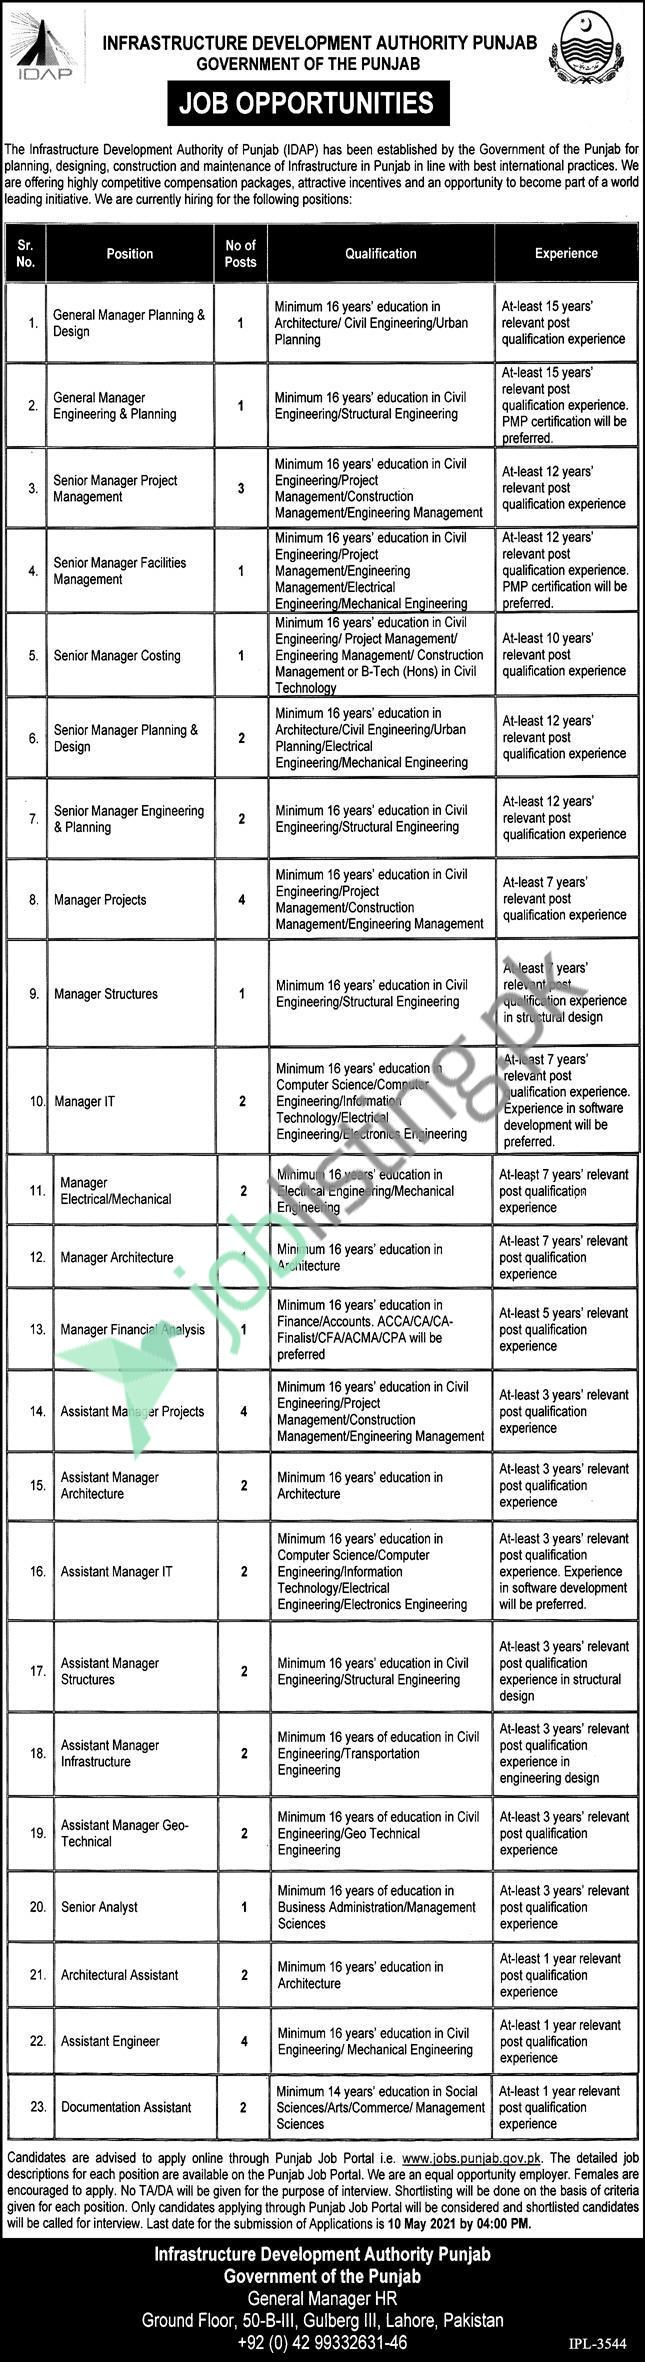 General Manager & Assistant Manager Jobs - Infrastructure Development Authority Punjab Jobs 2021